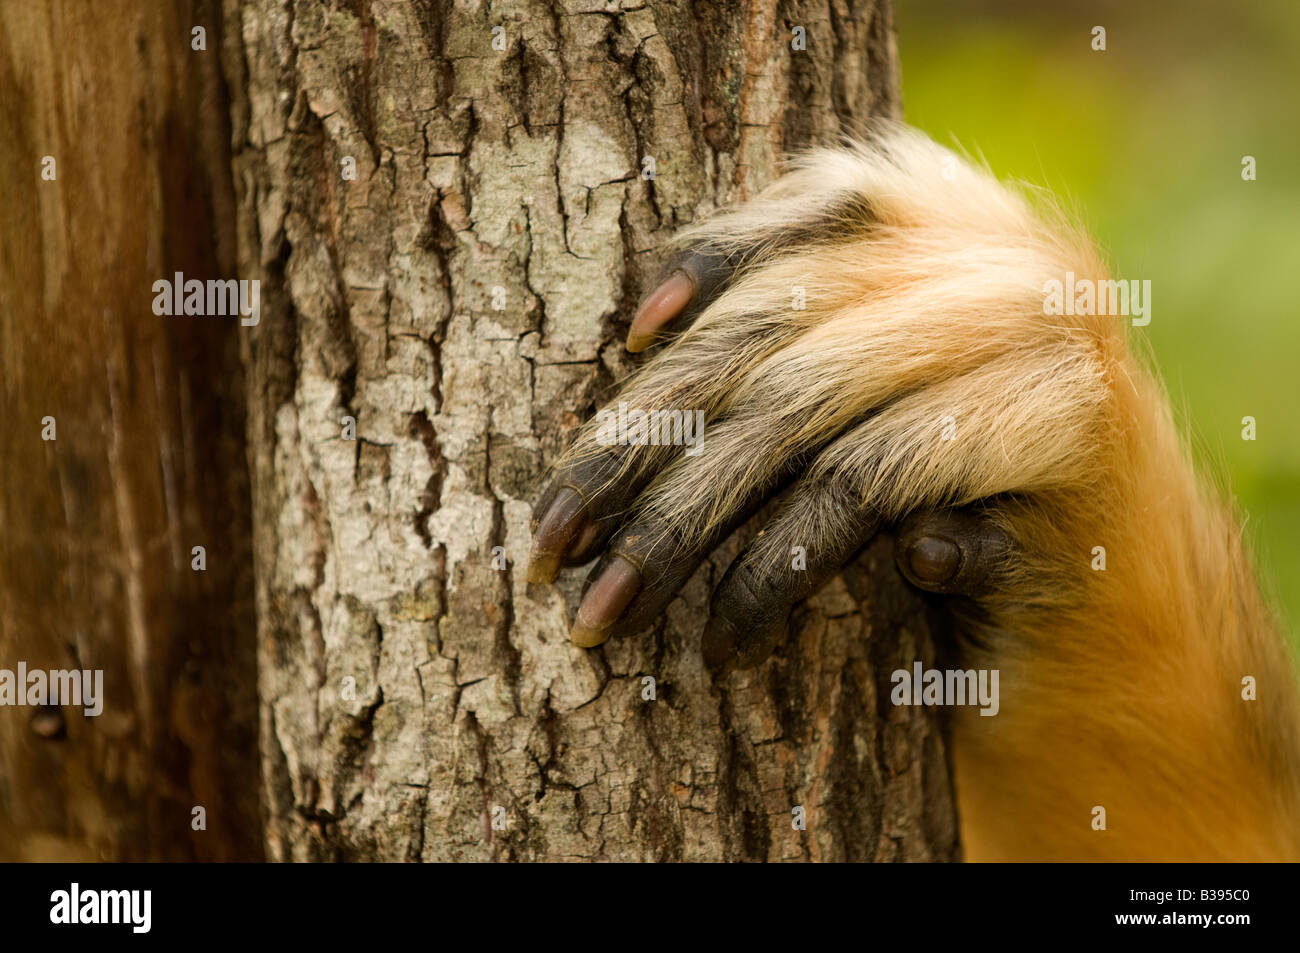 golden monkey's claw - Stock Image